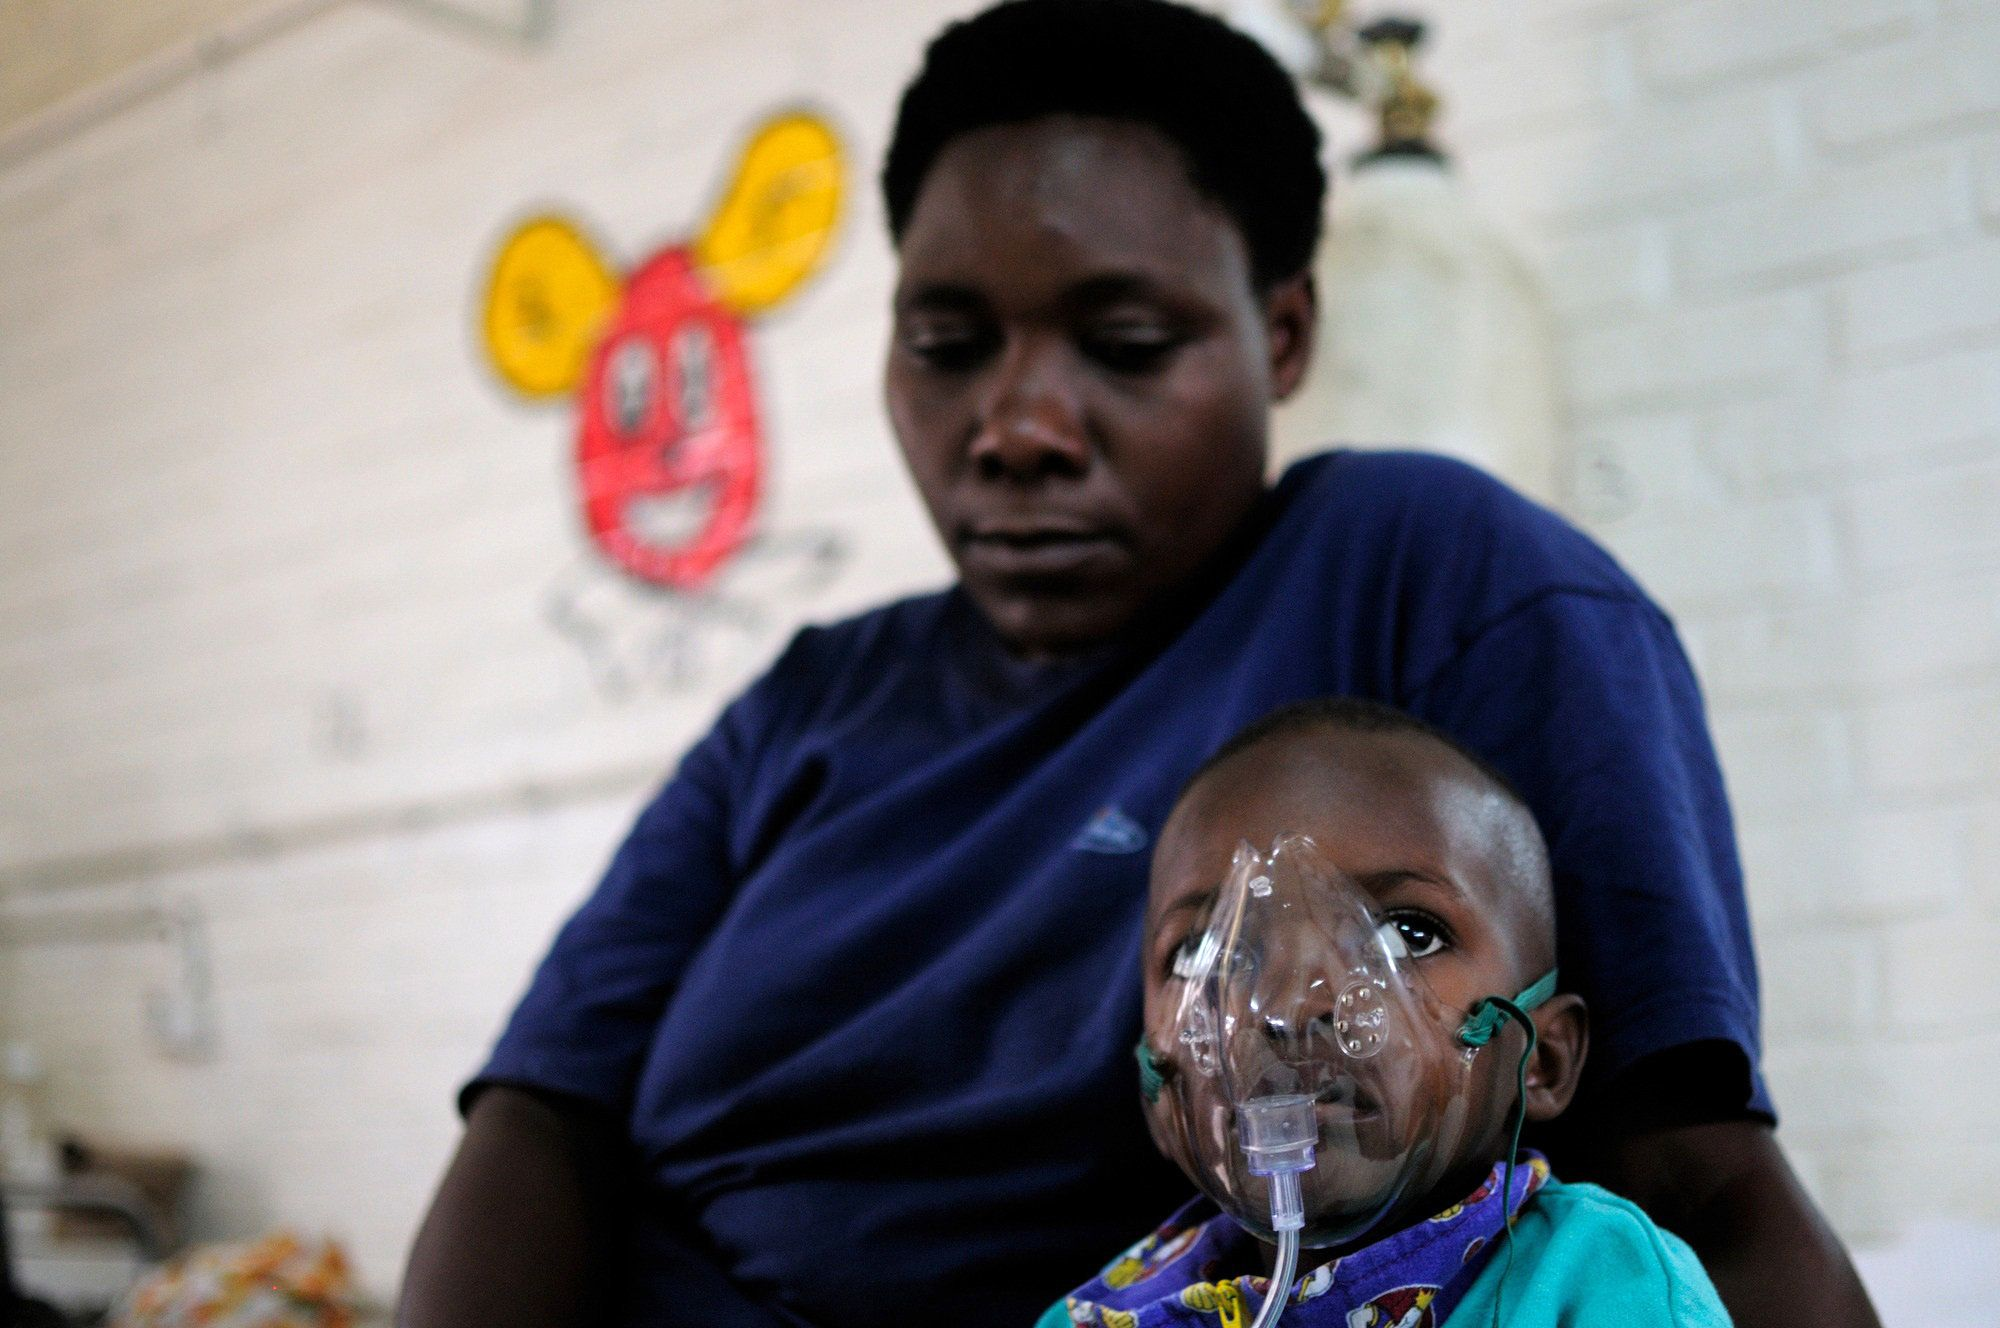 TO GO WITH by Helen Vesperini Yves Twemerimana, 3, wears an oxygen mask in a bed at the Kigali Central University Hospital in Kigali, as he is tended to by Dr Narcisse Muganga for a severe case of pneumonia on September 1, 2010. With big strides made against both malaria and pneumococcal disease, Rwanda is on track to meet UN Millennium Development Goal no 4, the reduction of child mortality, officials say. 'Rwanda is one of the few countries in Africa that stands a chance of reaching the MDG targets if the current rhythm is maintained,' said Lamine Cisse Sarr, World Health Organisation representative to Rwanda.        AFP PHOTO/HO/SHANON JENSEN (Photo credit should read Shannon Jensen/AFP/Getty Images)